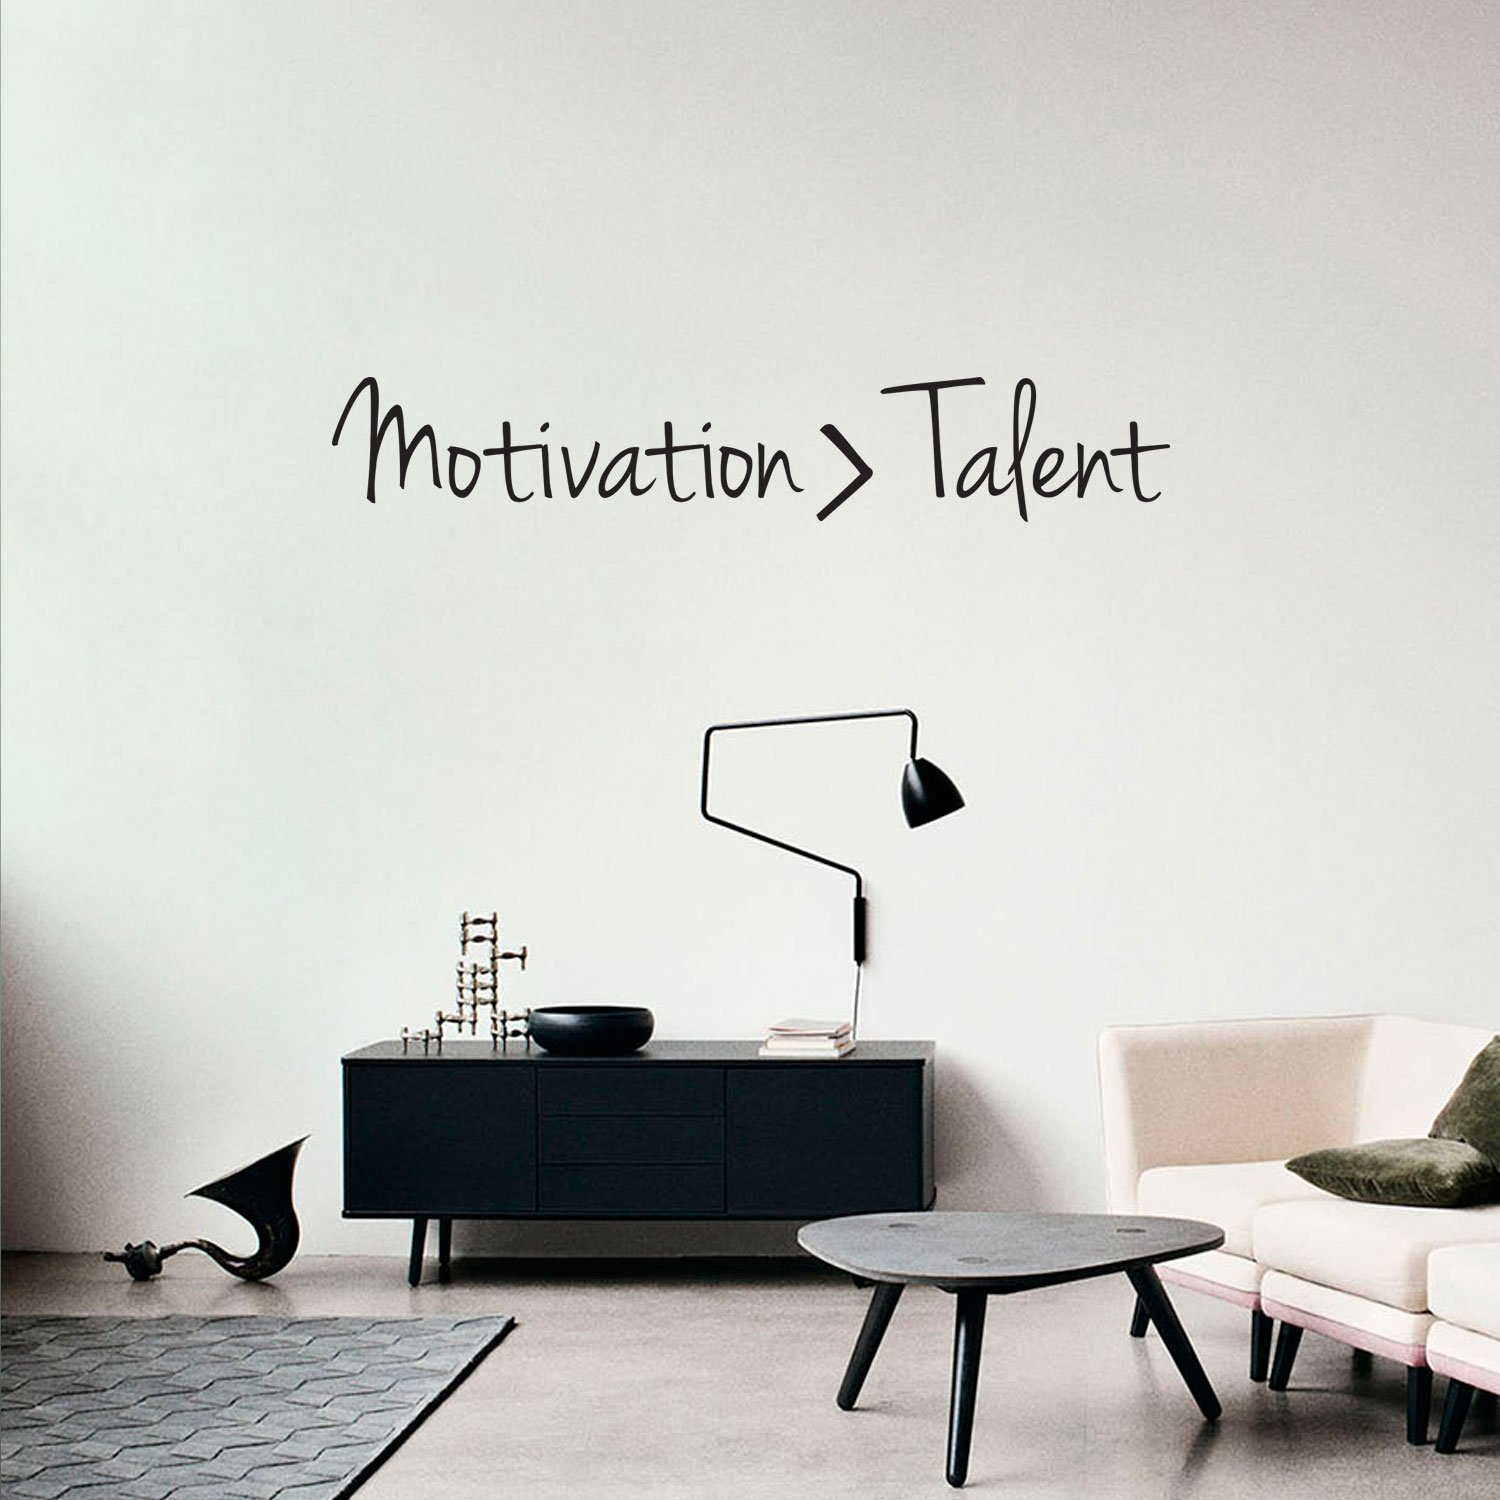 Inspirational Quotes Wall Art Decal - Motivation Is Greater Than Talent - 6'' x 40'' Work Office Wall Decals - Gym Fitness Wall Decal Stickers - Home Decor Sayings Wall Art Removable Lettering Decals by Pulse Vinyl (Image #1)